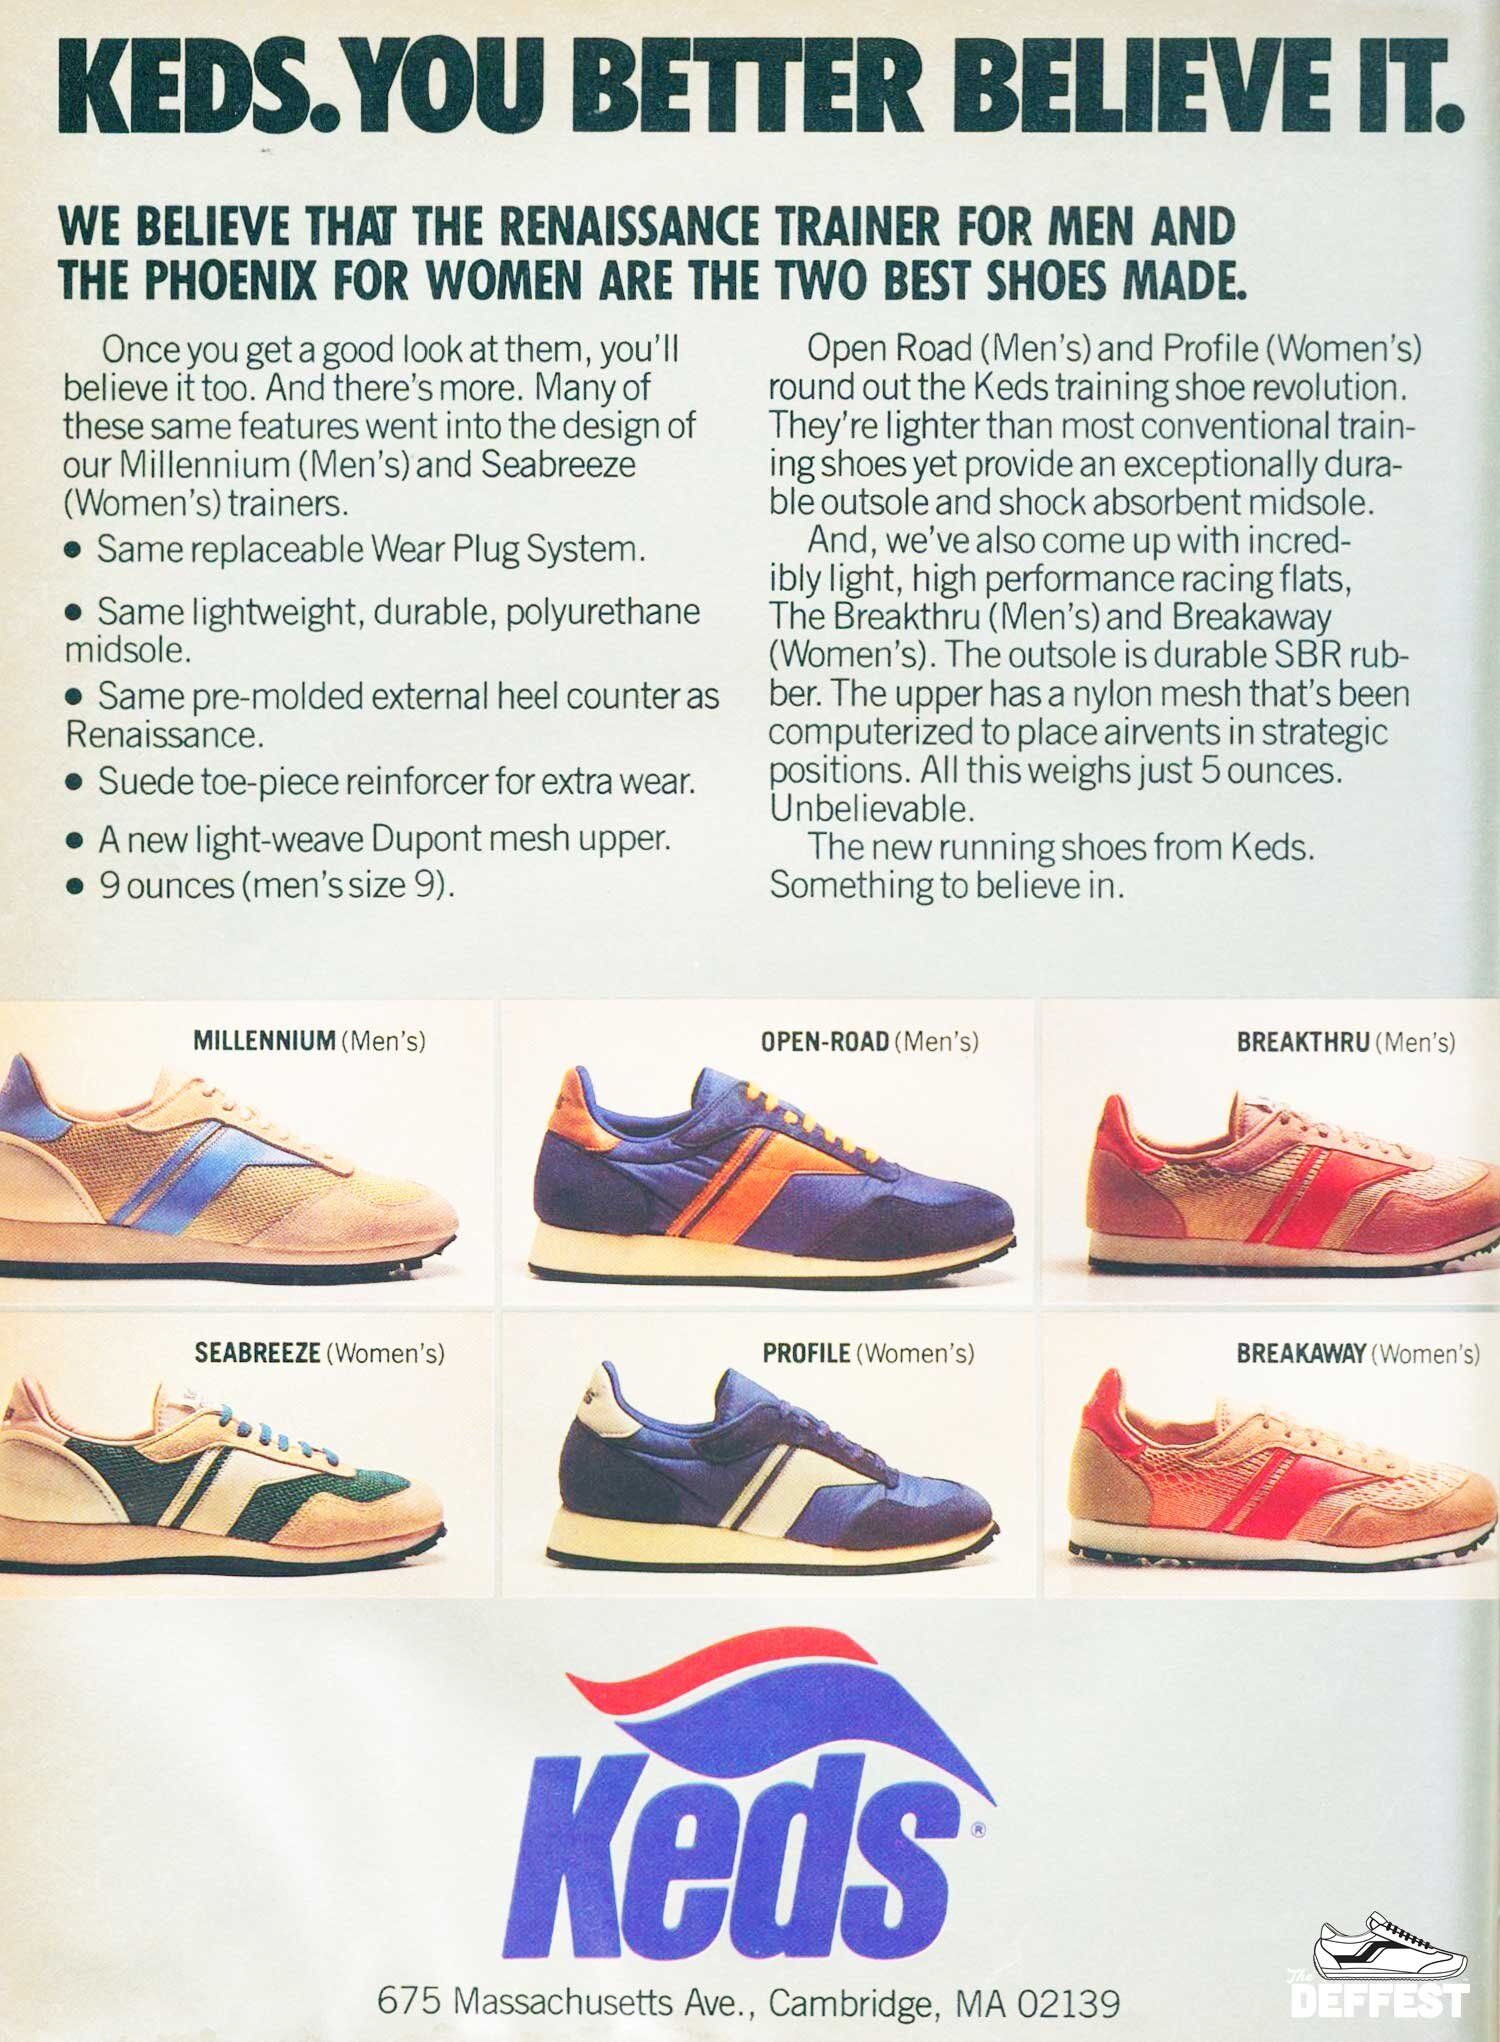 Keds 1980 vintage sneakers @ The